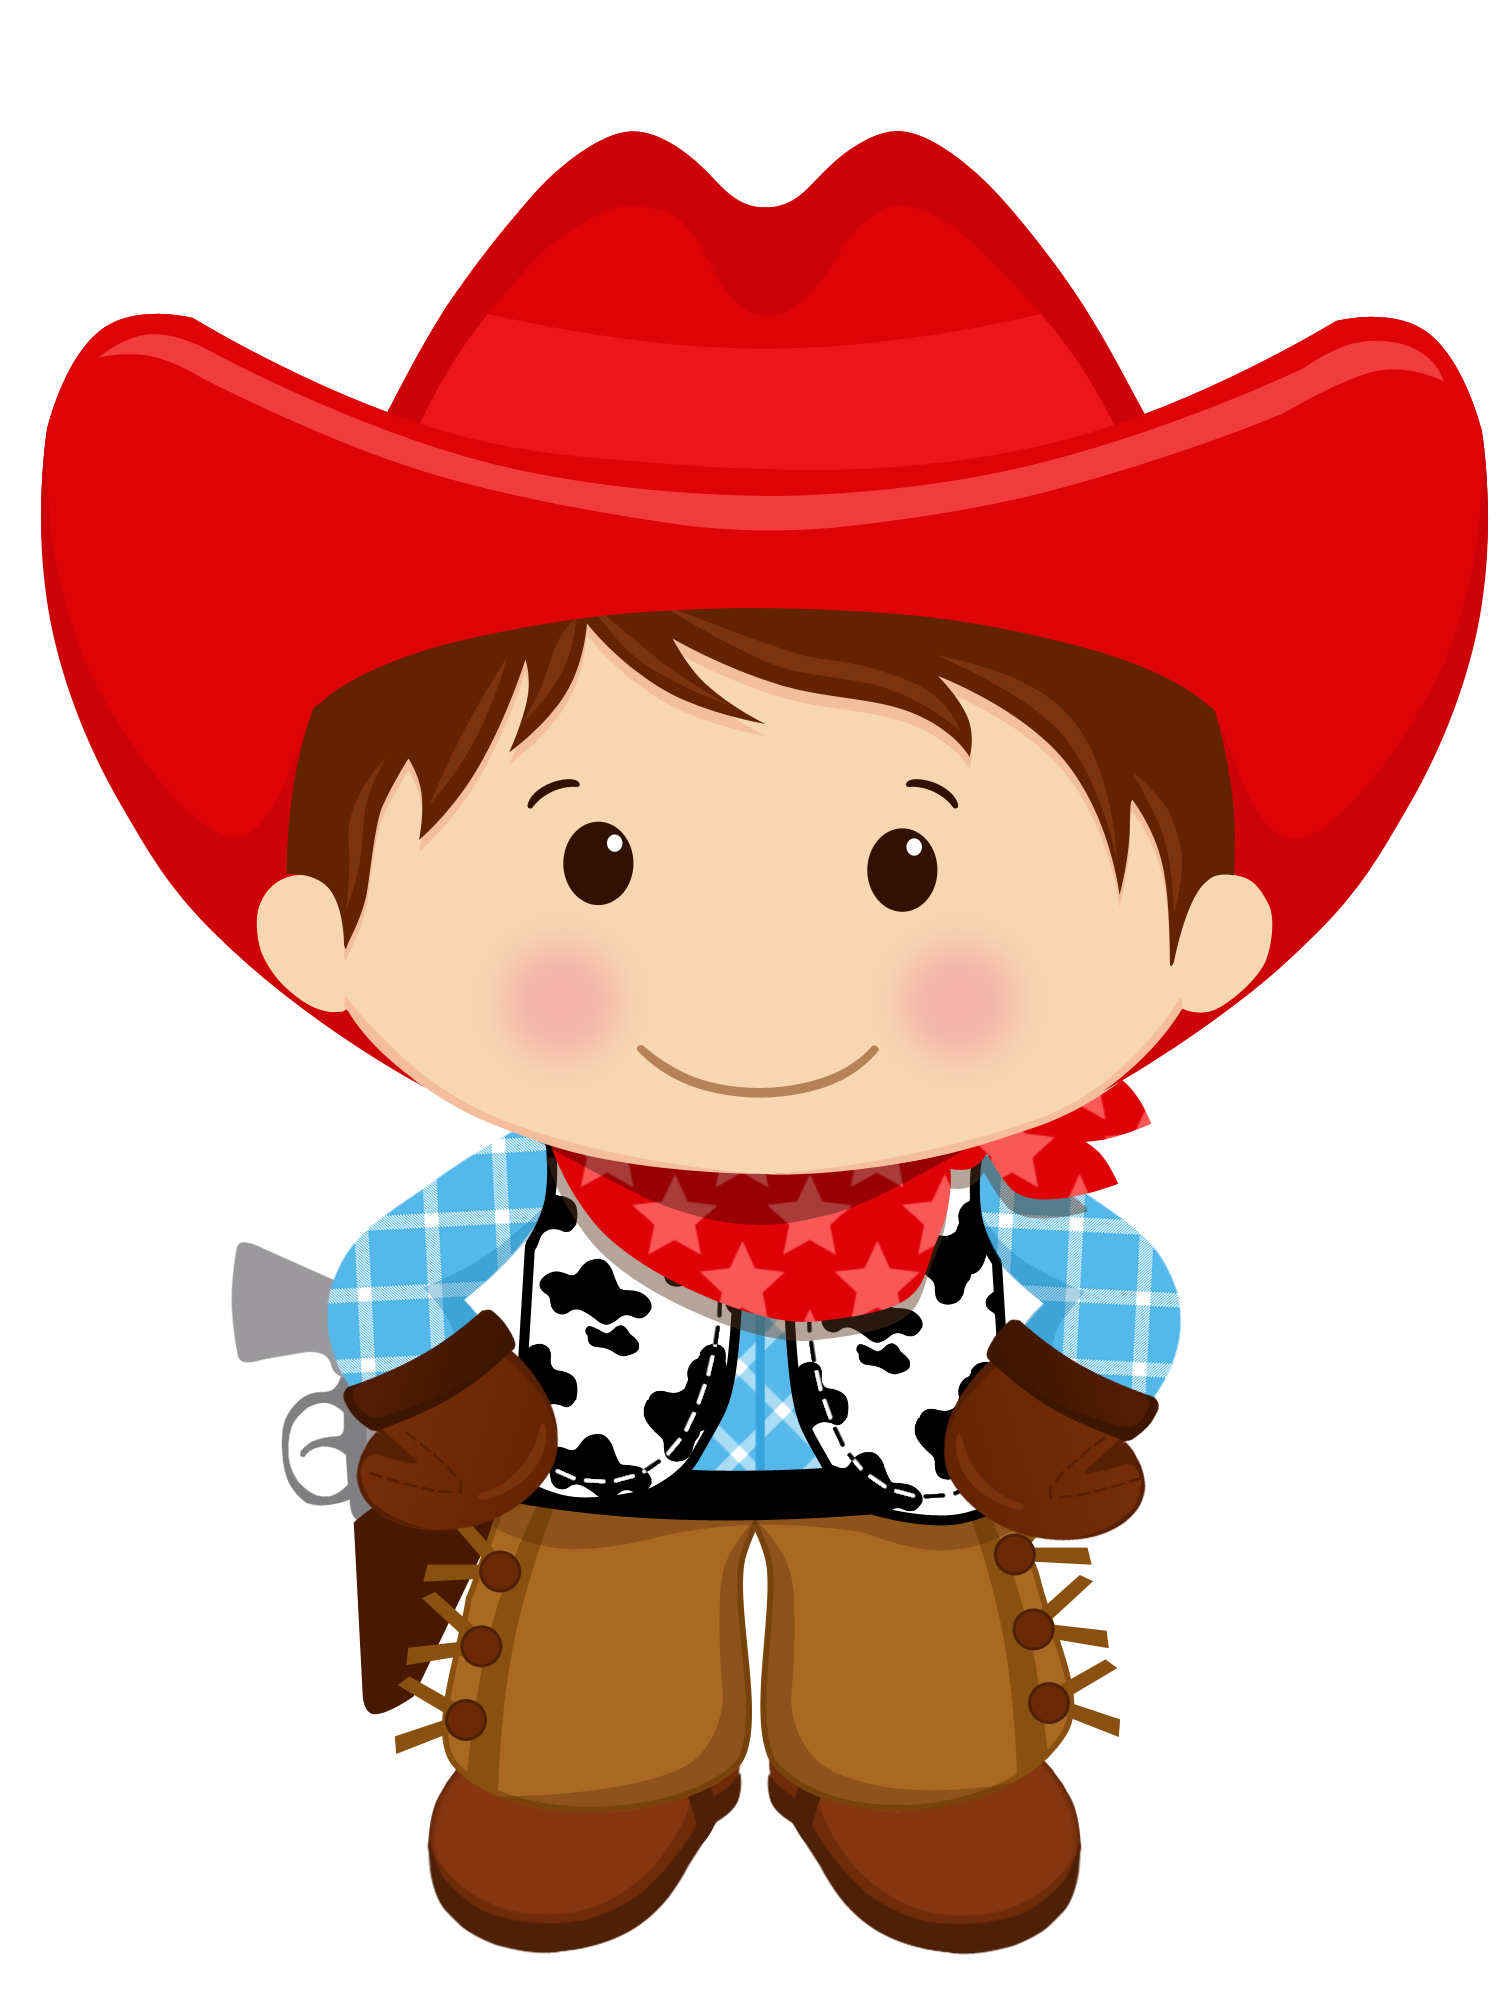 Cowgirl clipart lil. Brown haired cowboy pinterest